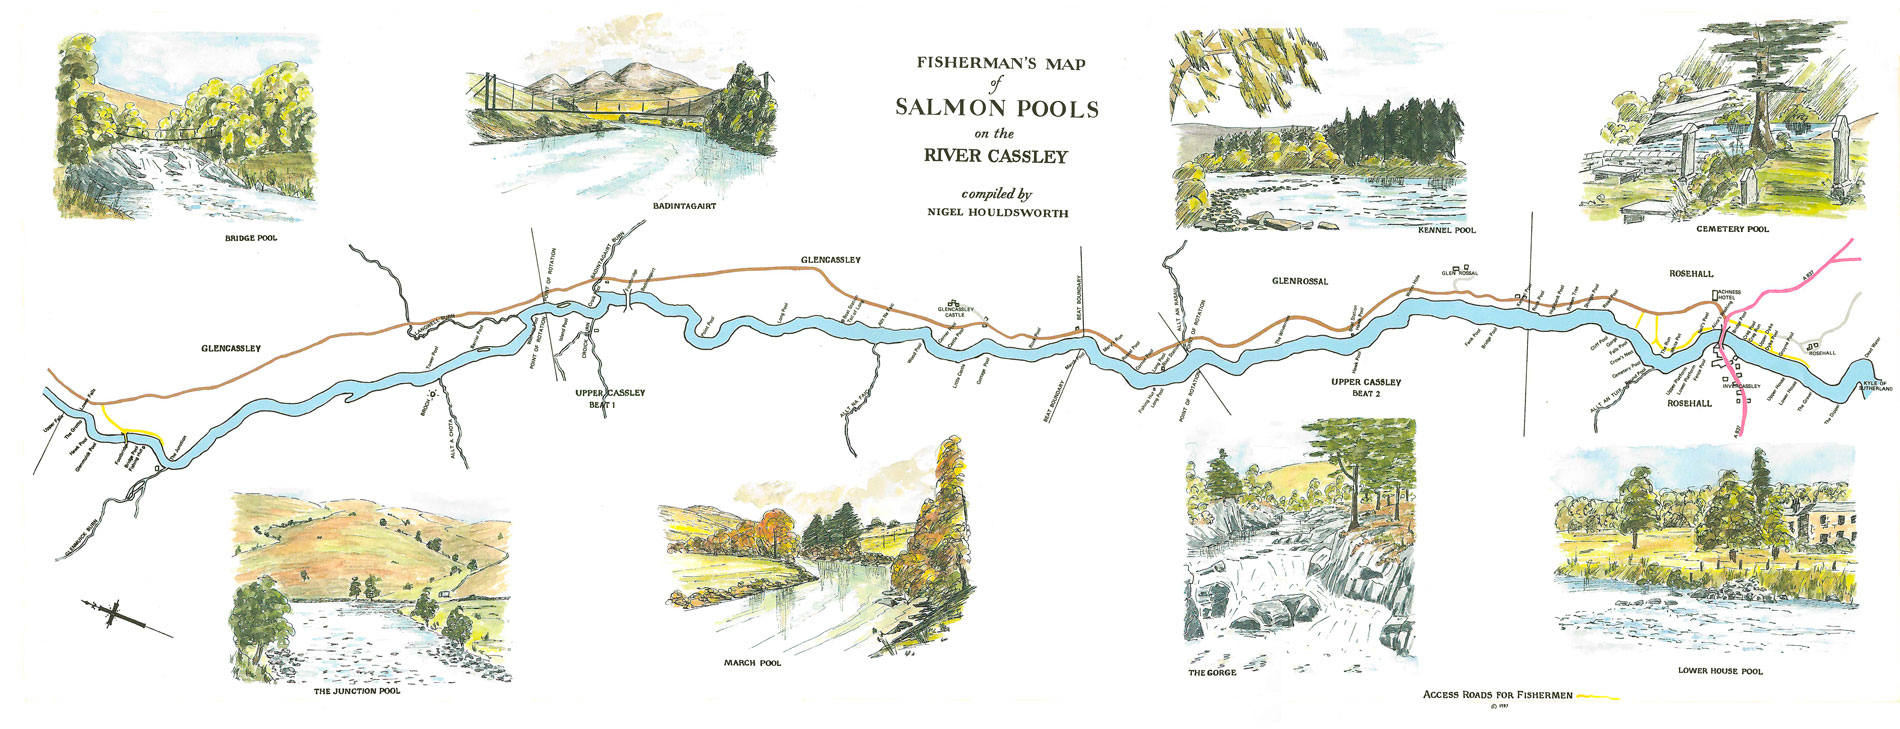 Map of River Cassley